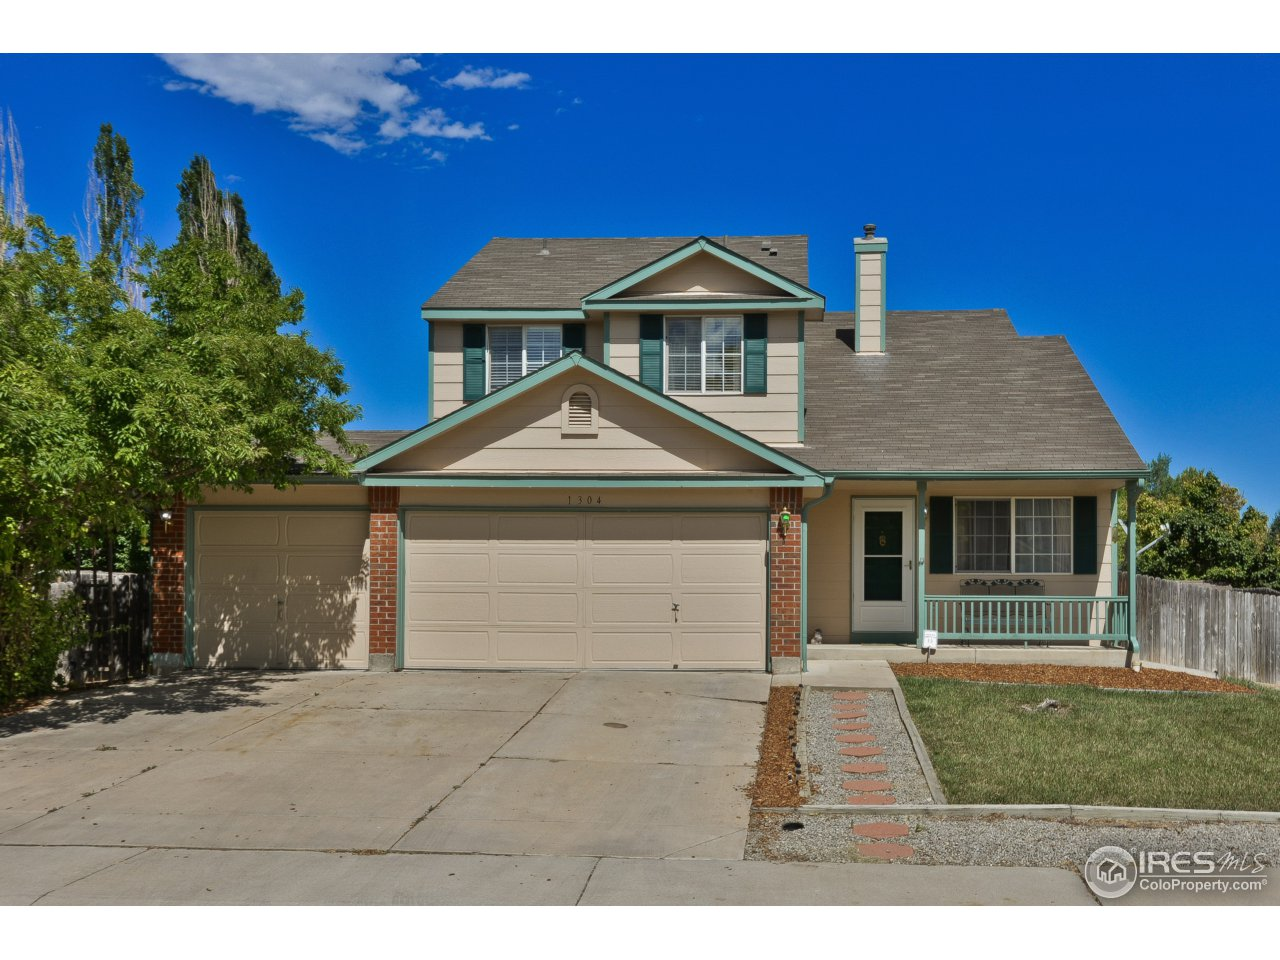 1304 Walden Ct, Longmont, CO 80504